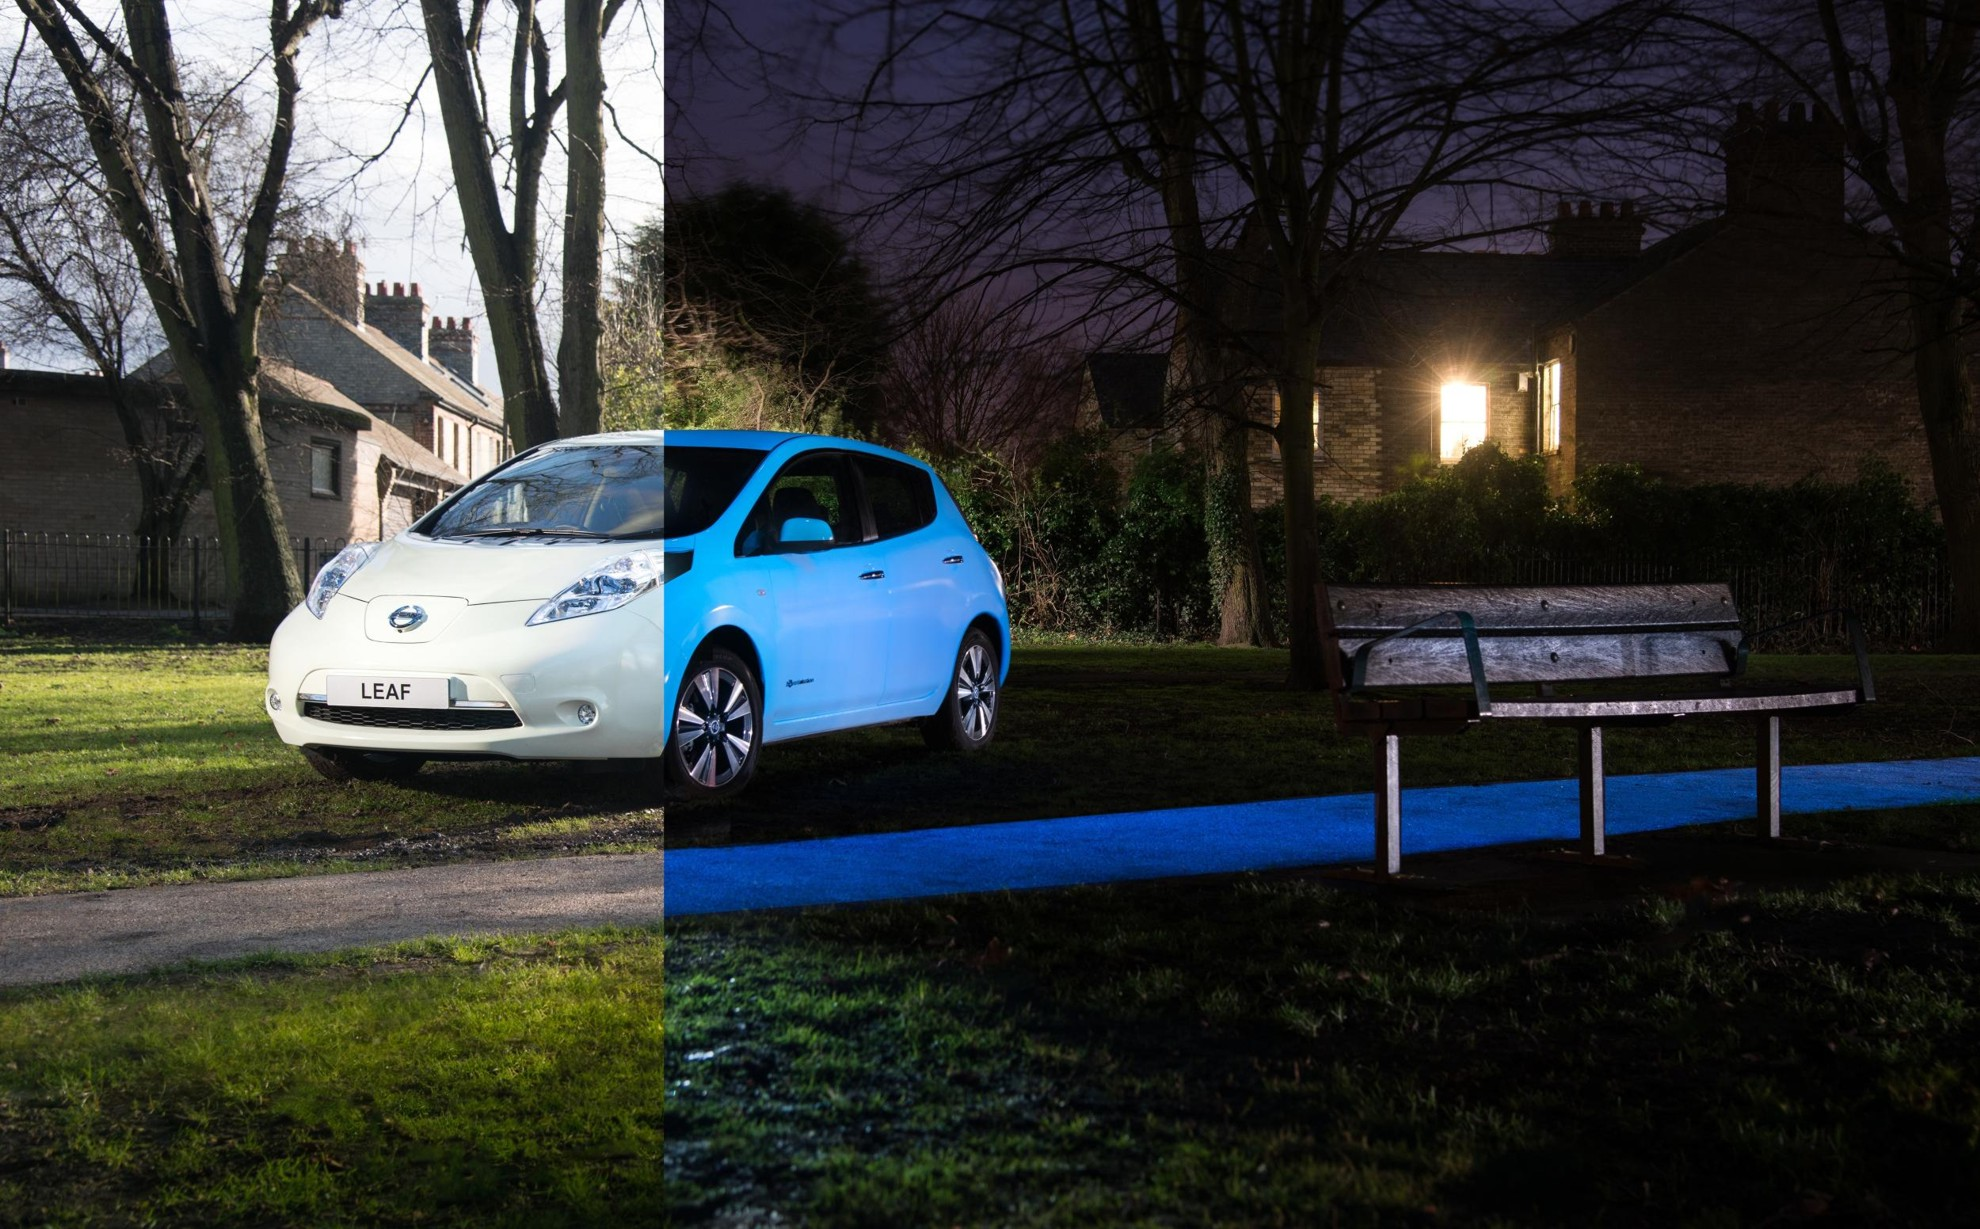 nissan-leaf-glow-in-the-dark5